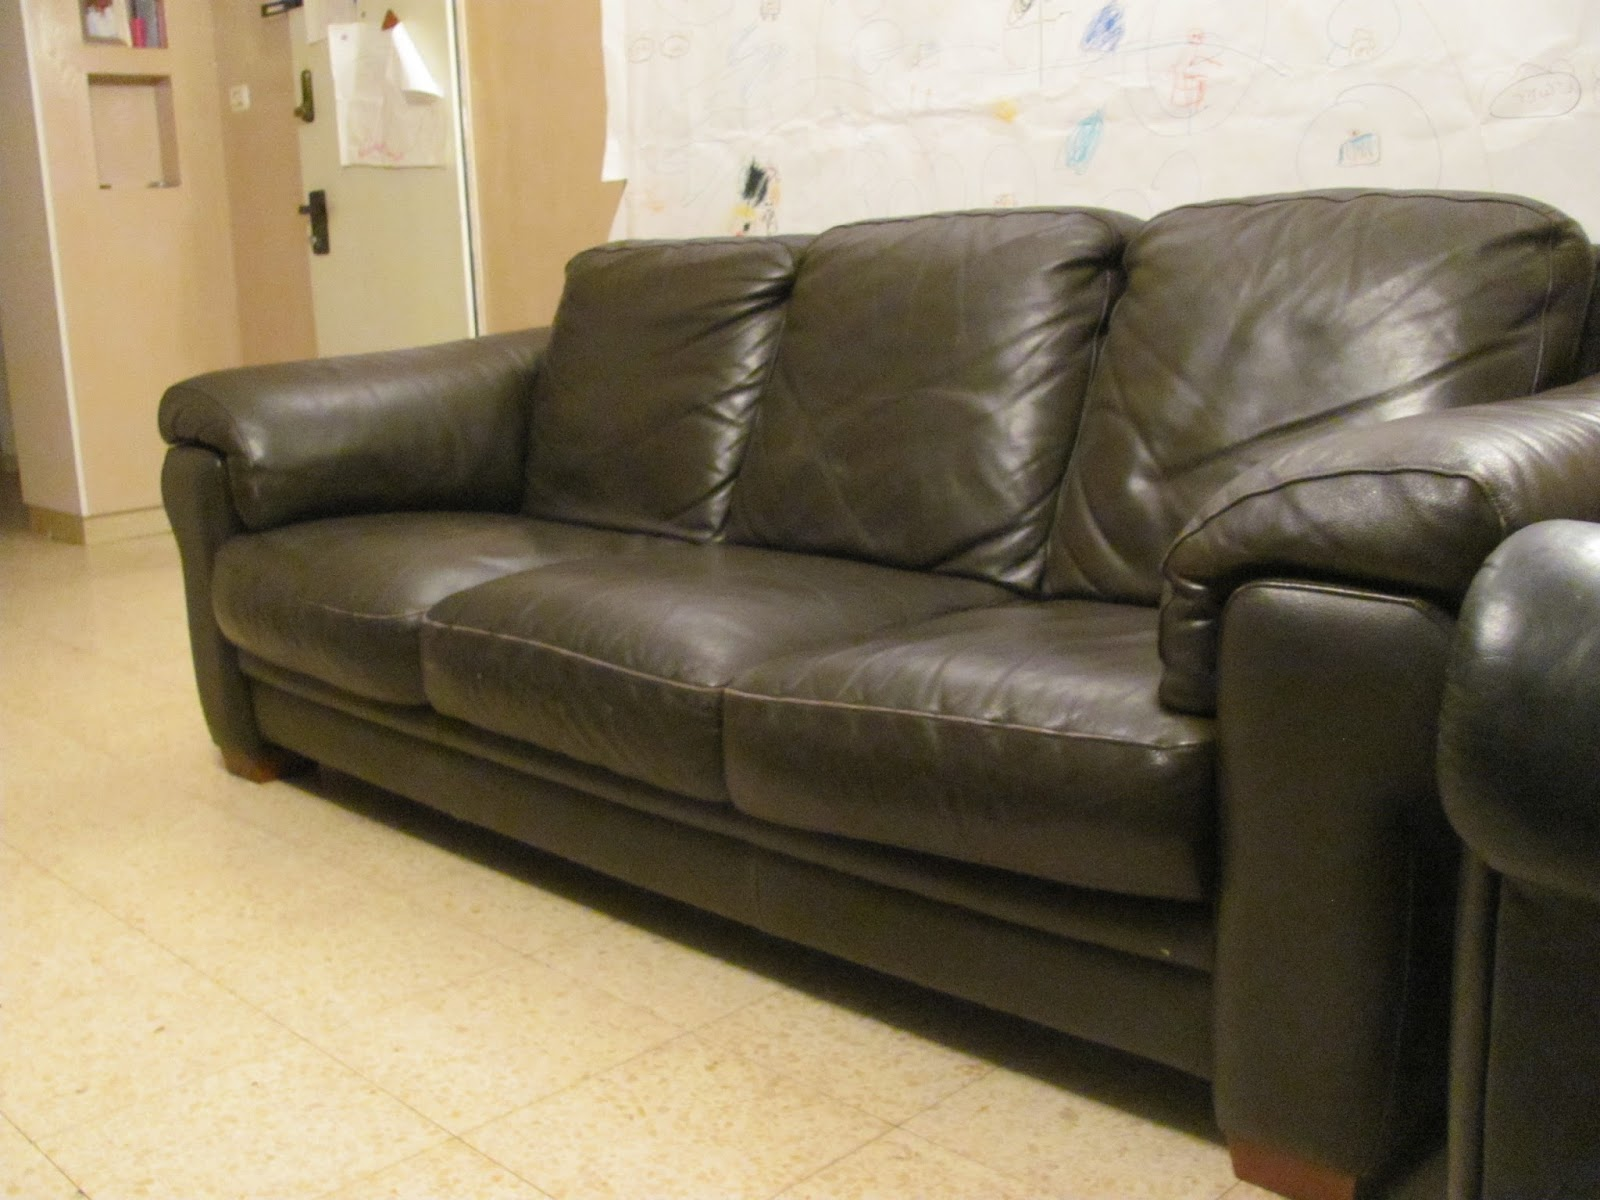 Sofa For Sale Bahrain 2nd Hand Furniture Highest Quality Lowest Prices Email Us